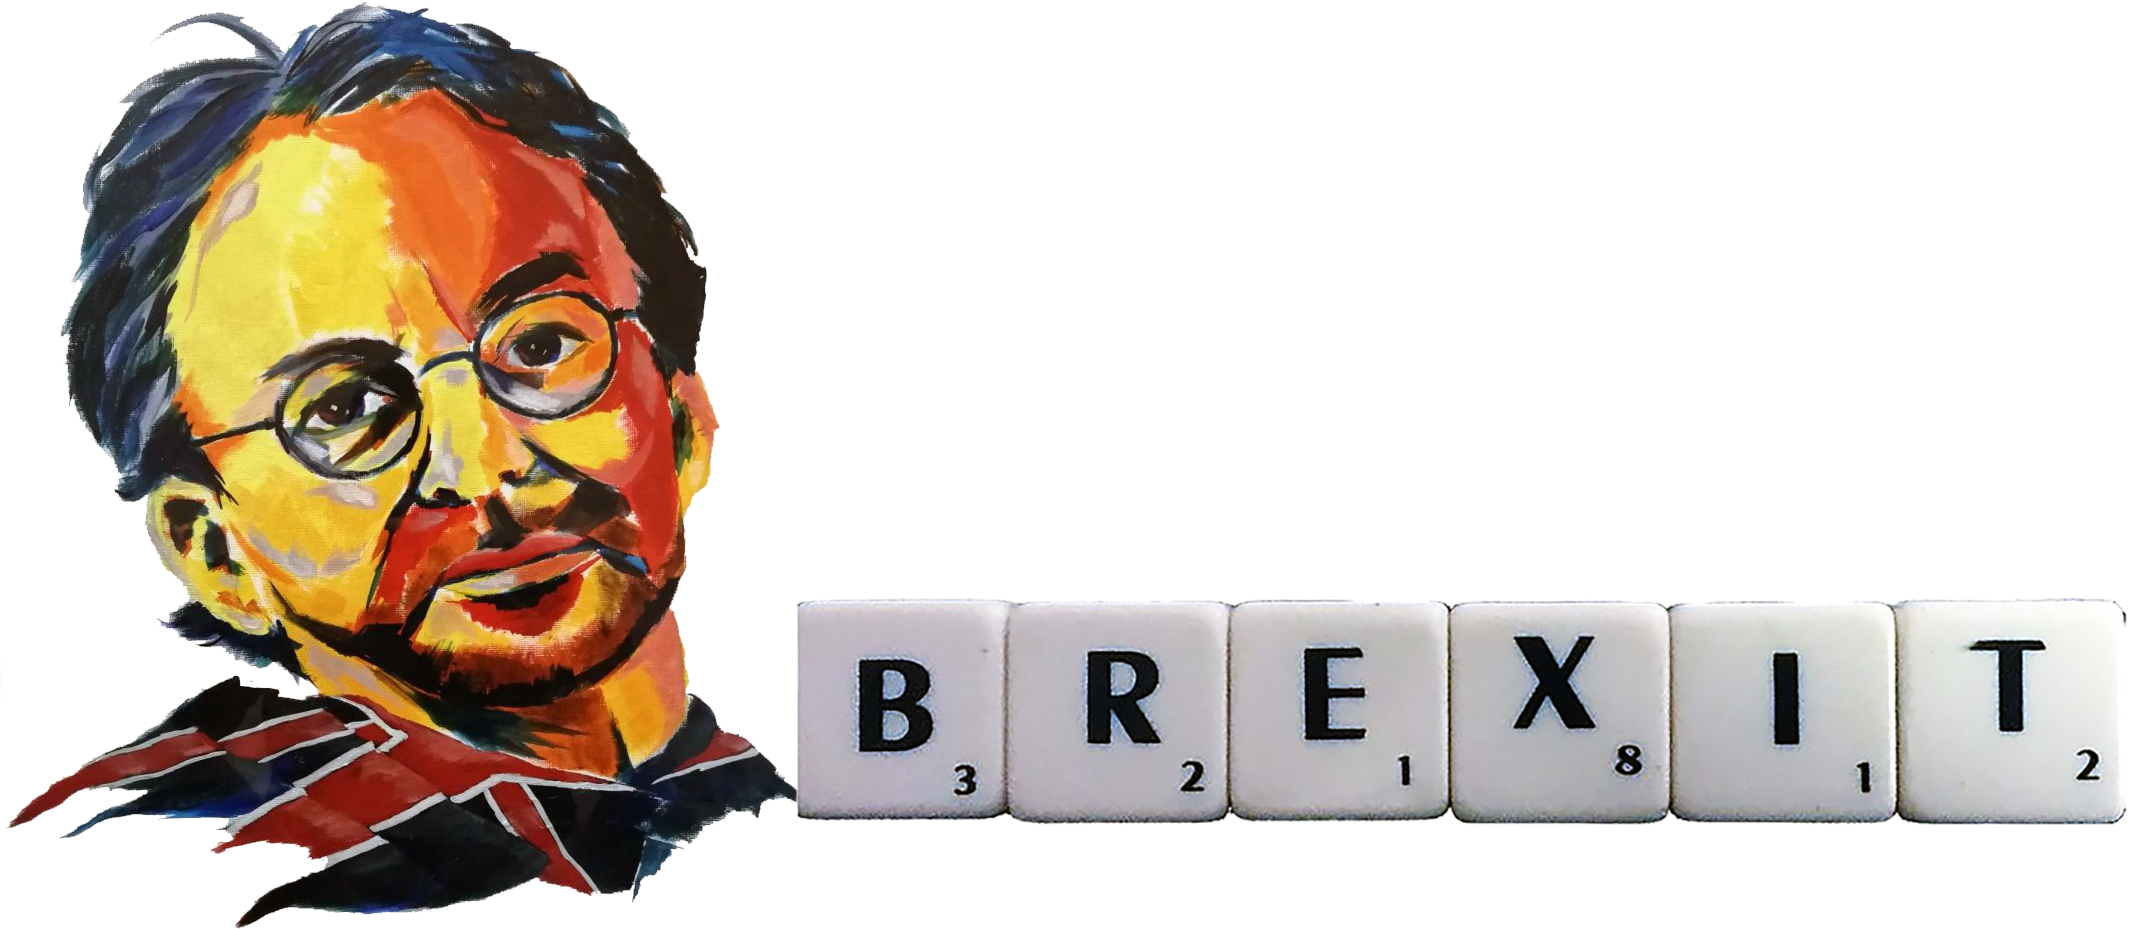 Talkingaboutbrexit